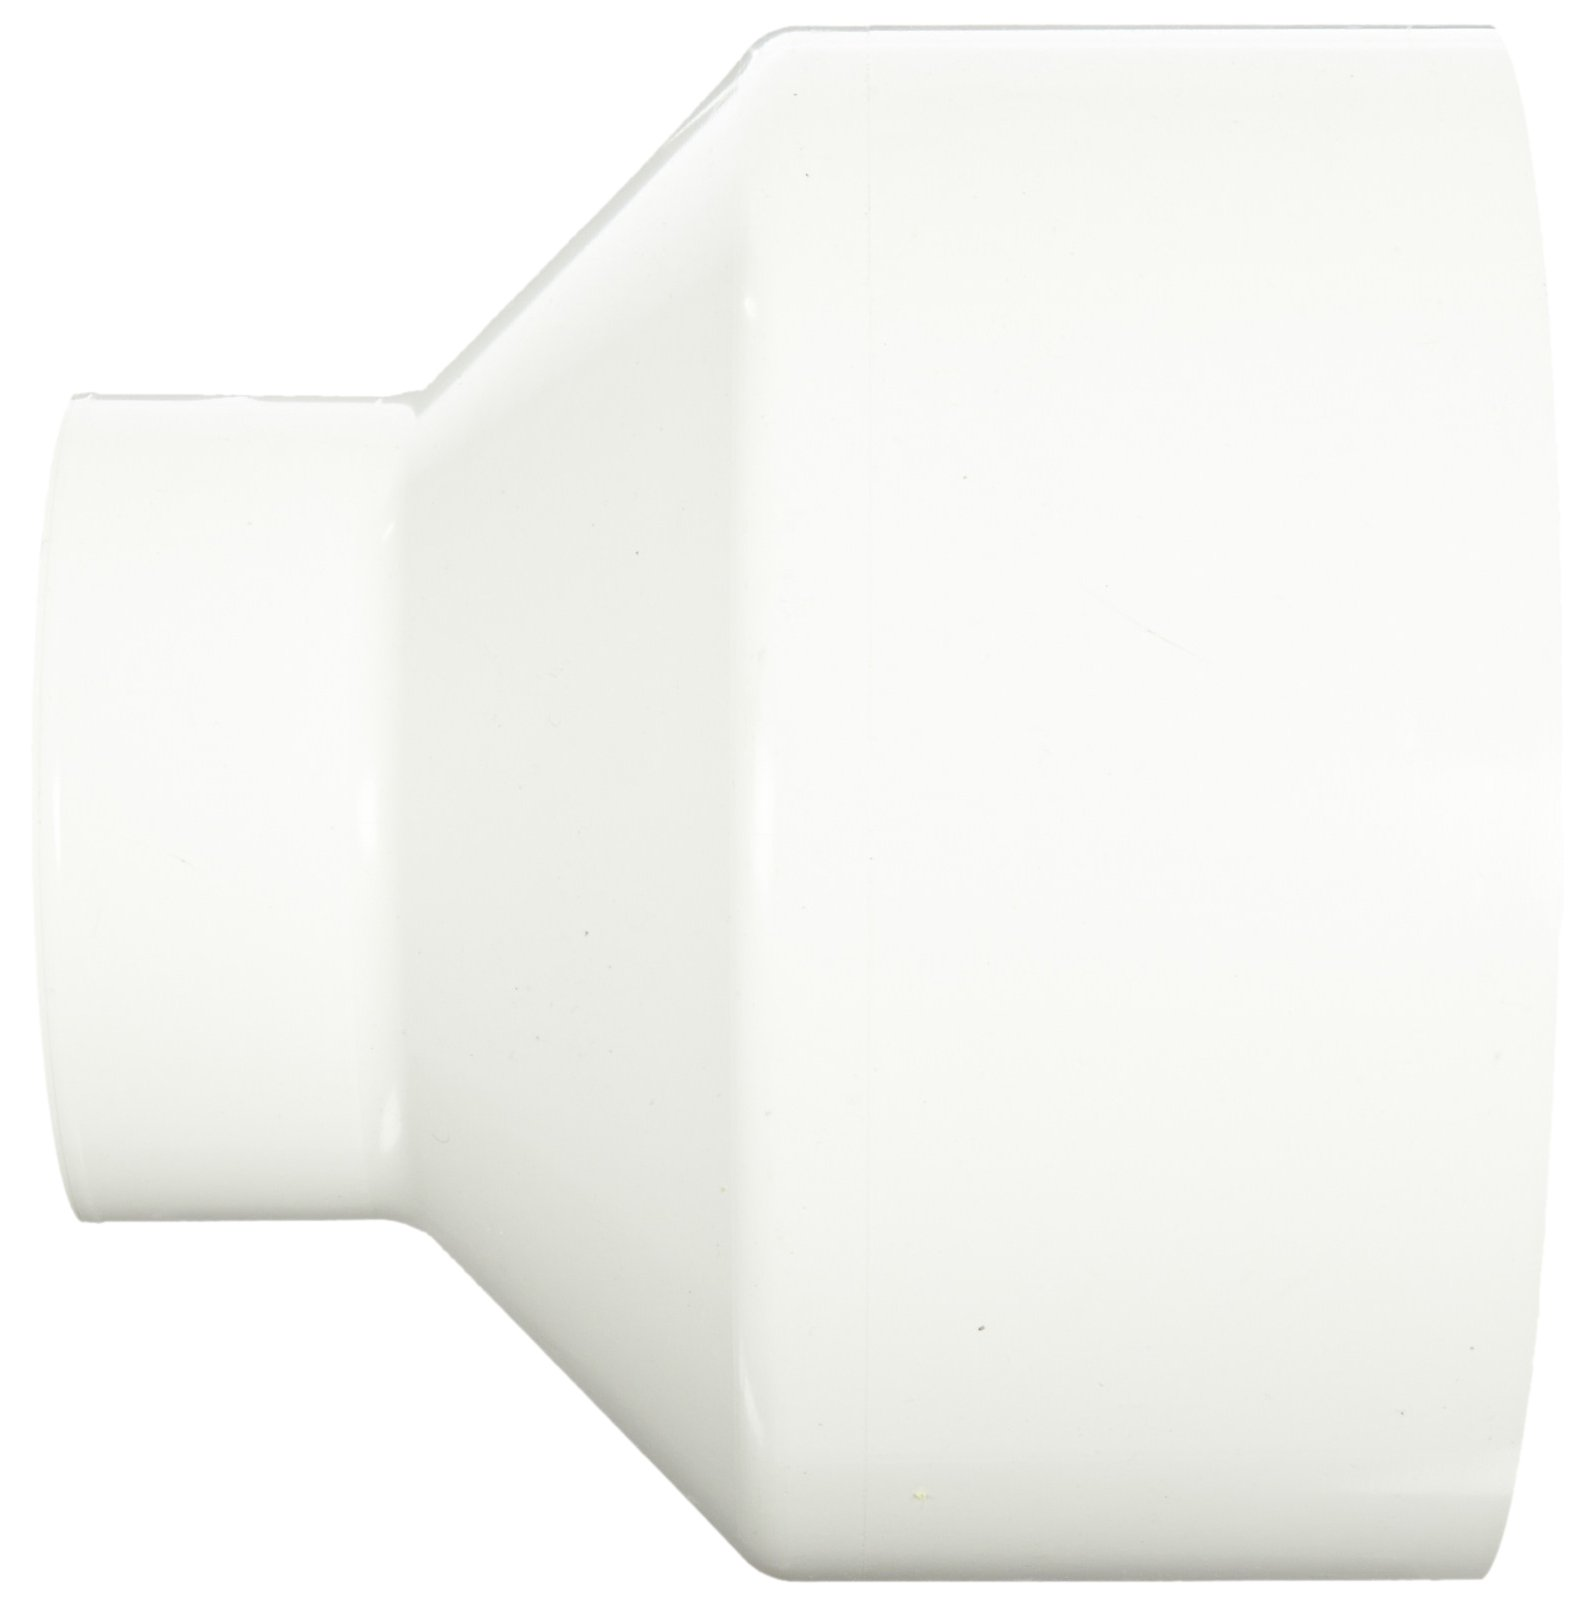 Spears P102 Series PVC DWV Pipe Fitting, Reducing Coupling, 8'' x 4'' Hub by Spears Manufacturing (Image #2)